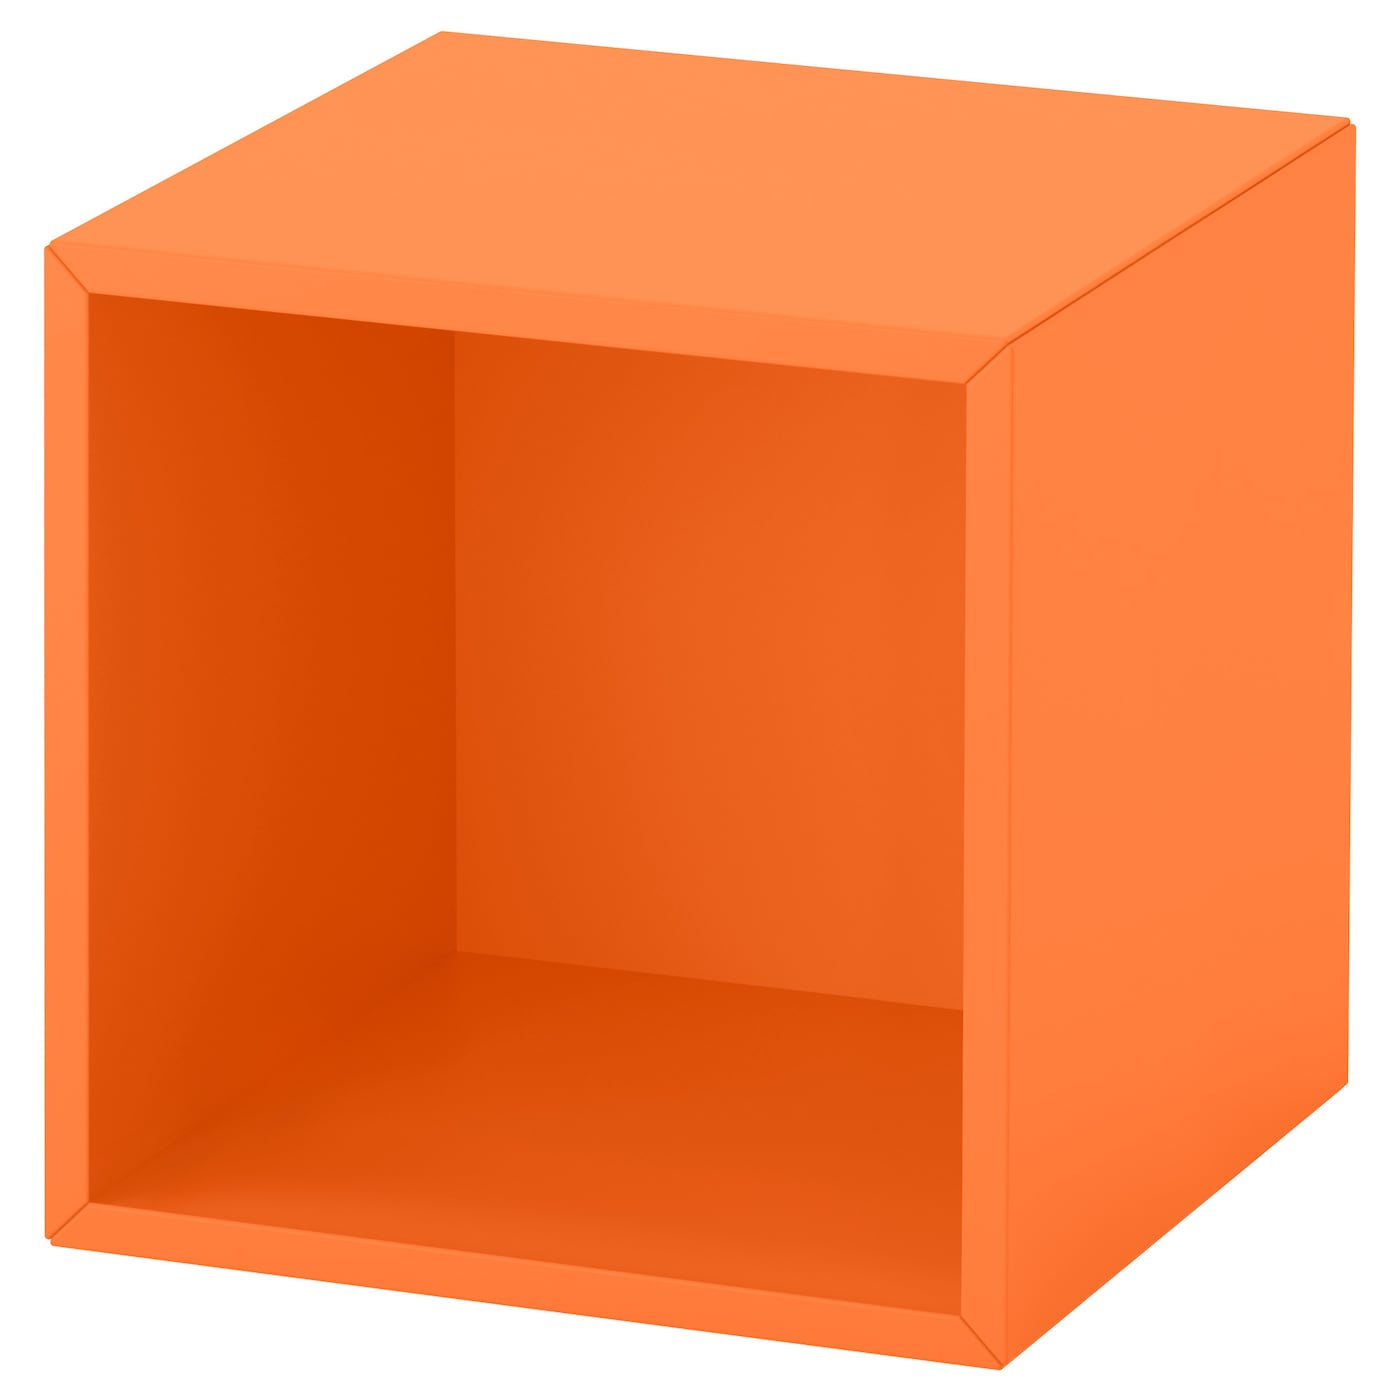 eket rangement orange 35x35x35 cm ikea. Black Bedroom Furniture Sets. Home Design Ideas